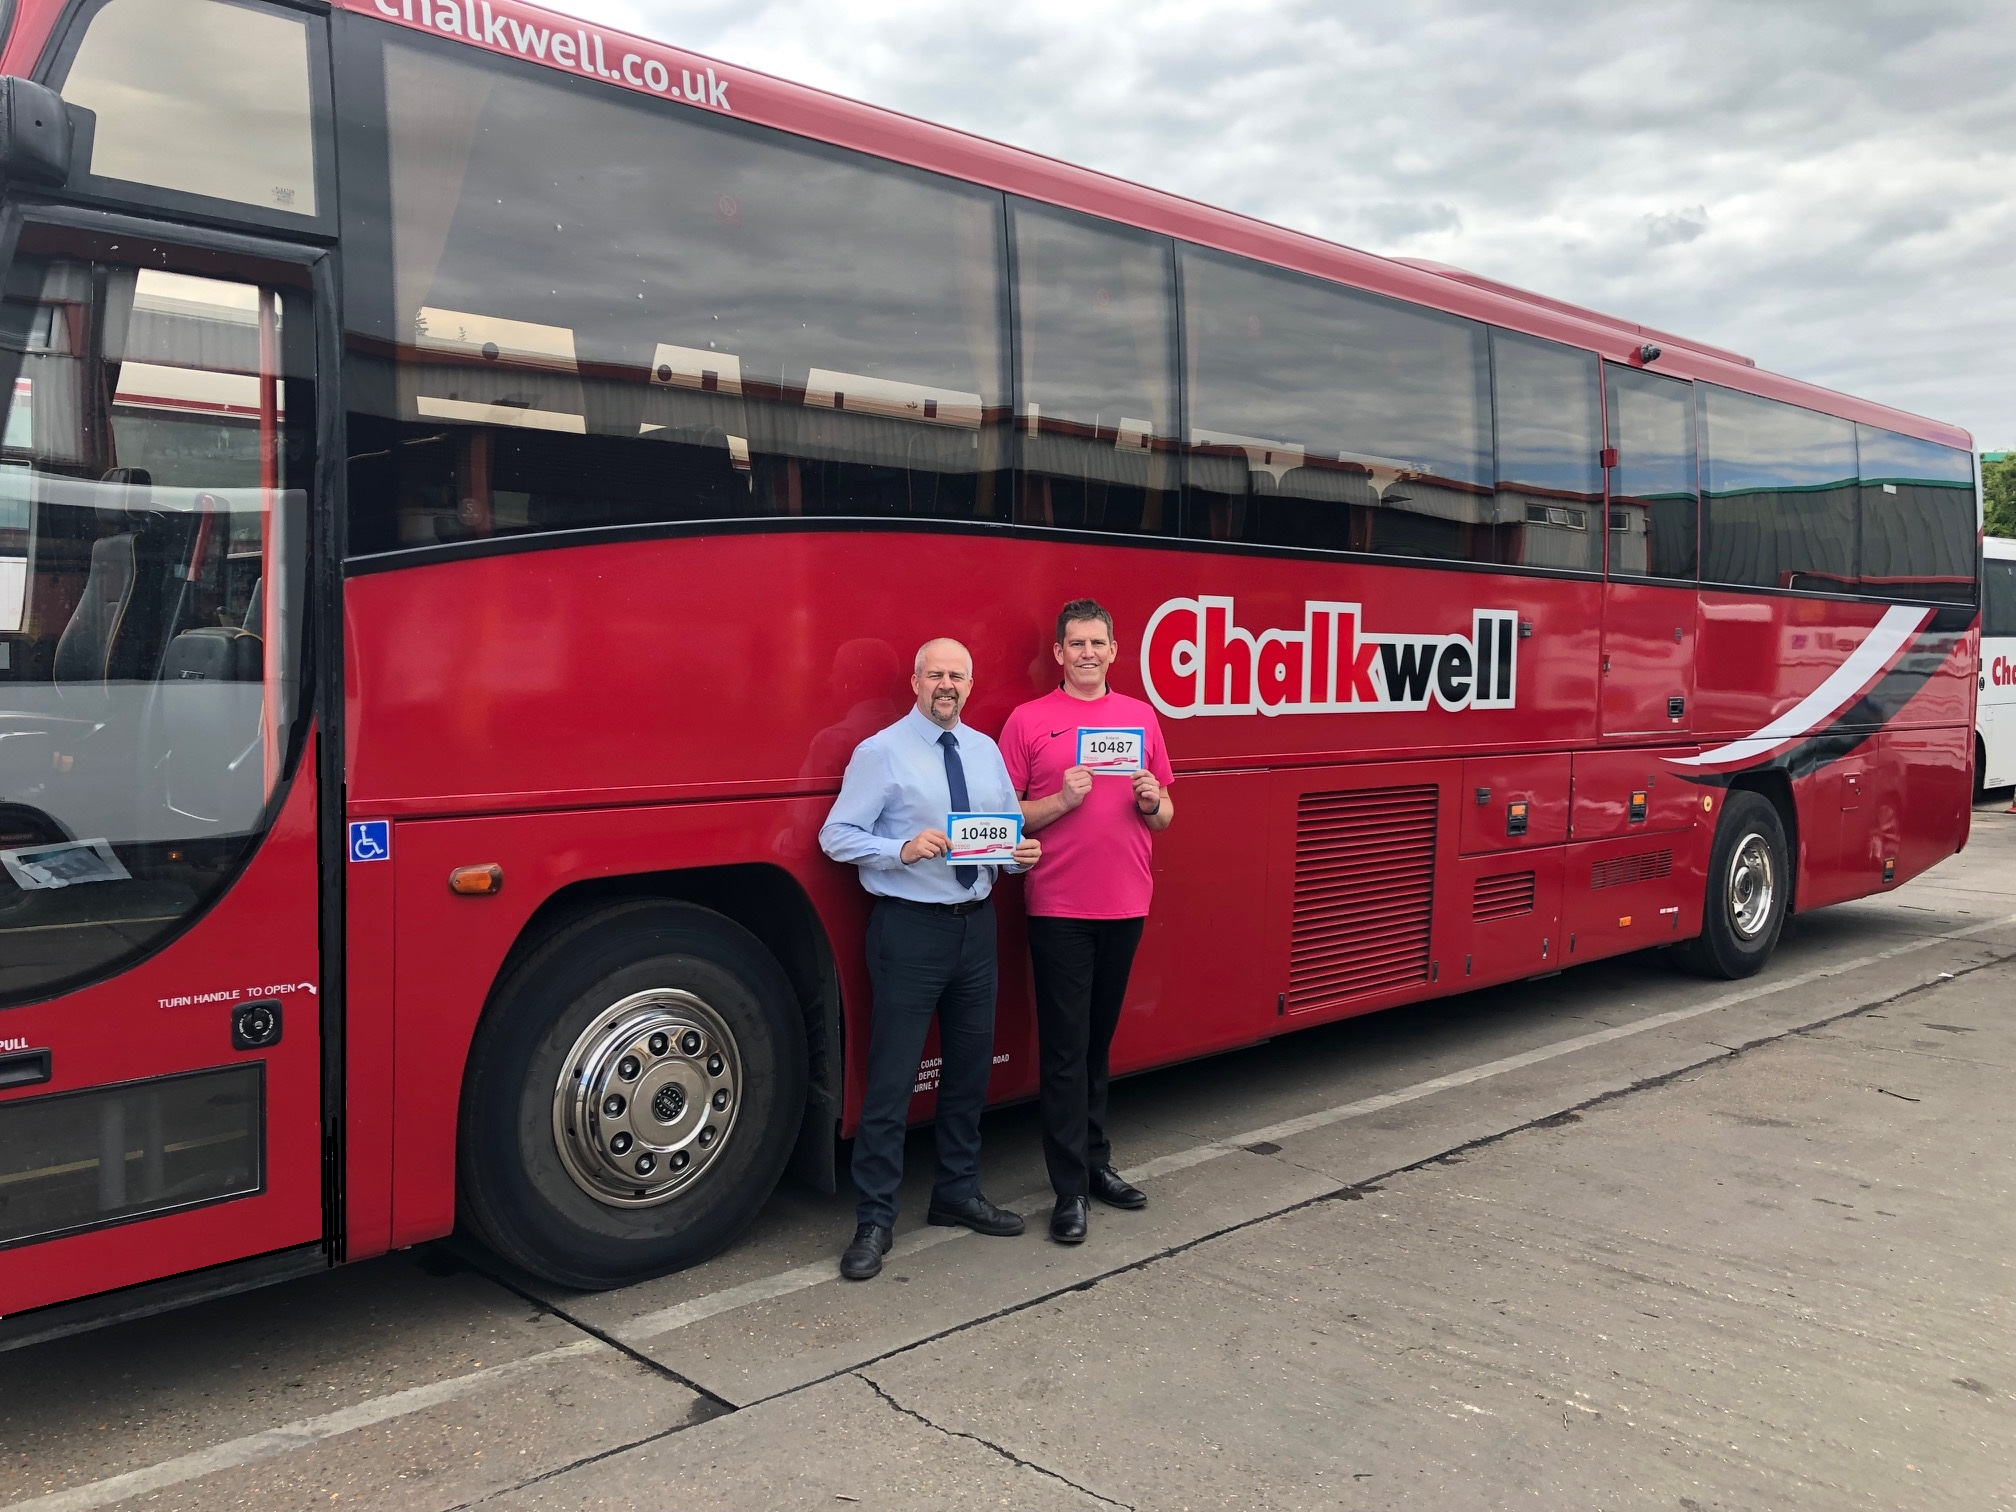 Chalkwell Duo Join Race for Life